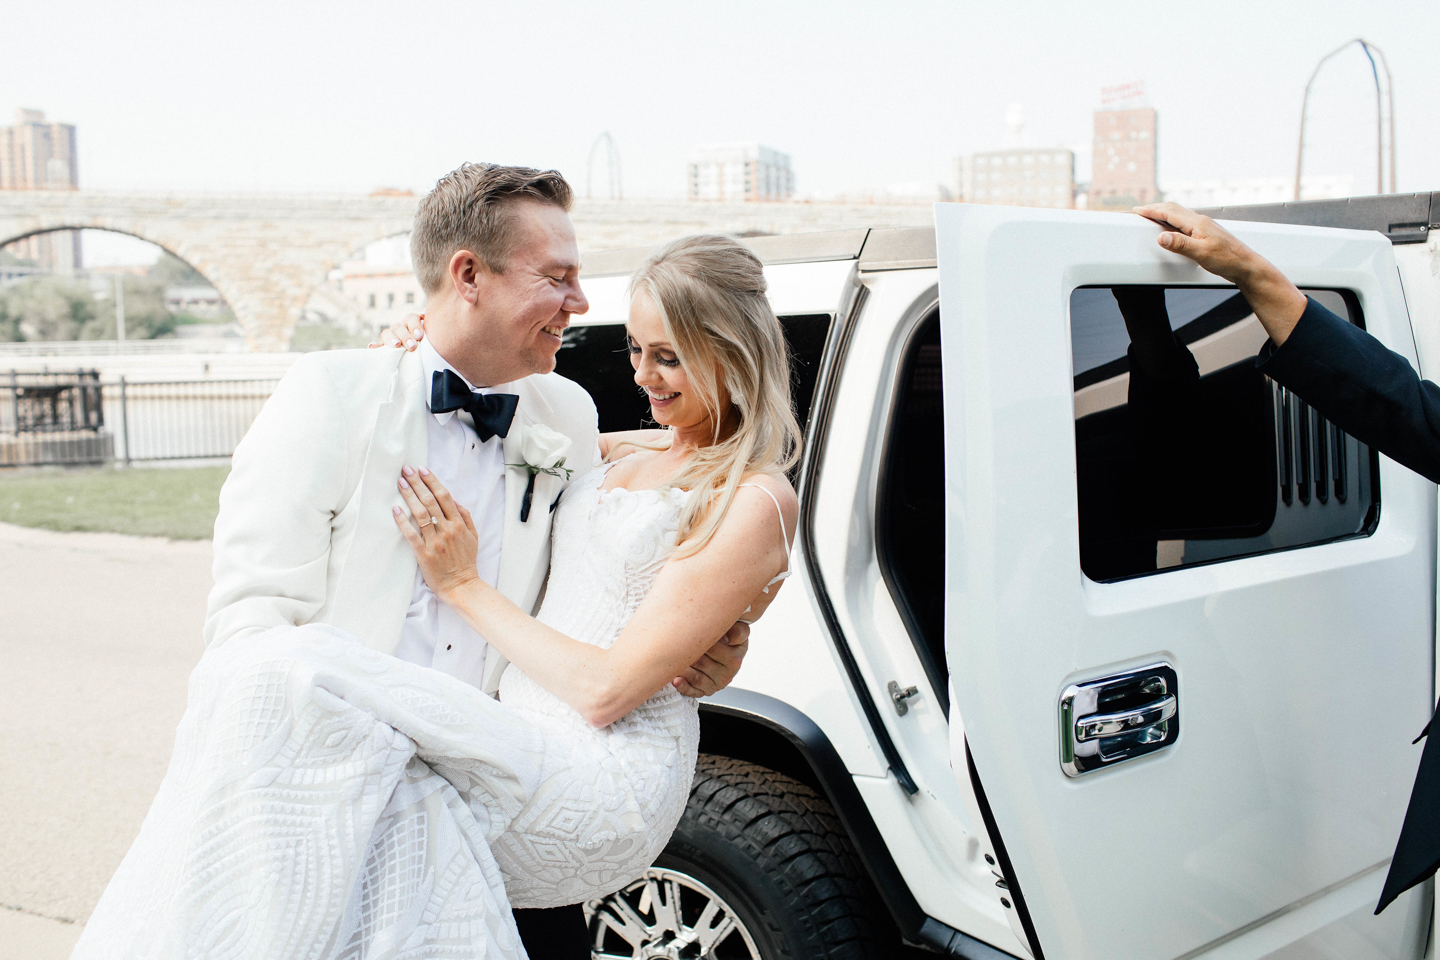 Limo wedding photography bride and groom